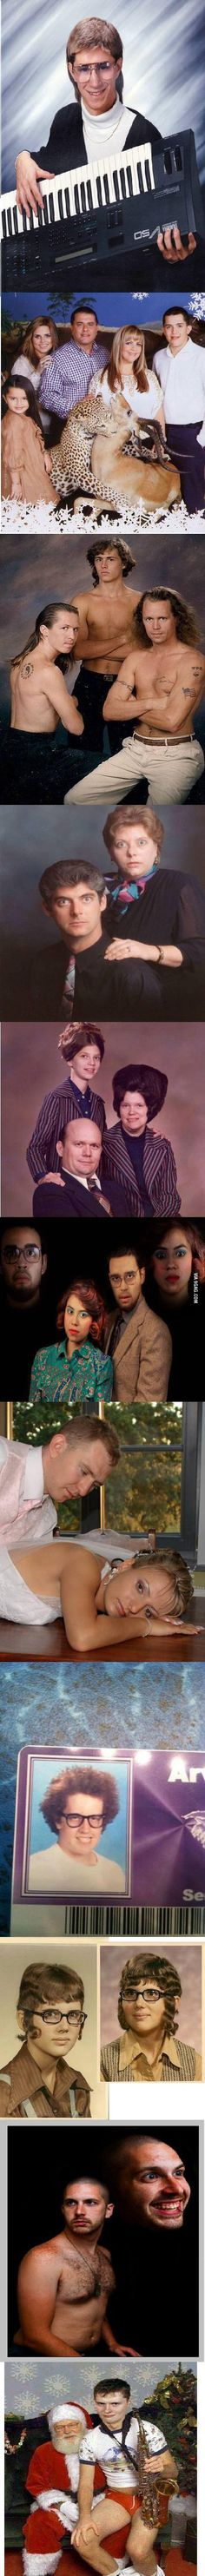 30 Ideas Funny Pictures Cant Stop Laughing Family Photos Humor I Love To Laugh, Make You Smile, Photoshop Fails, Awkward Family Photos, Awkward Pictures, Funny Pictures Can't Stop Laughing, Lol, Belly Laughs, Funny Cute